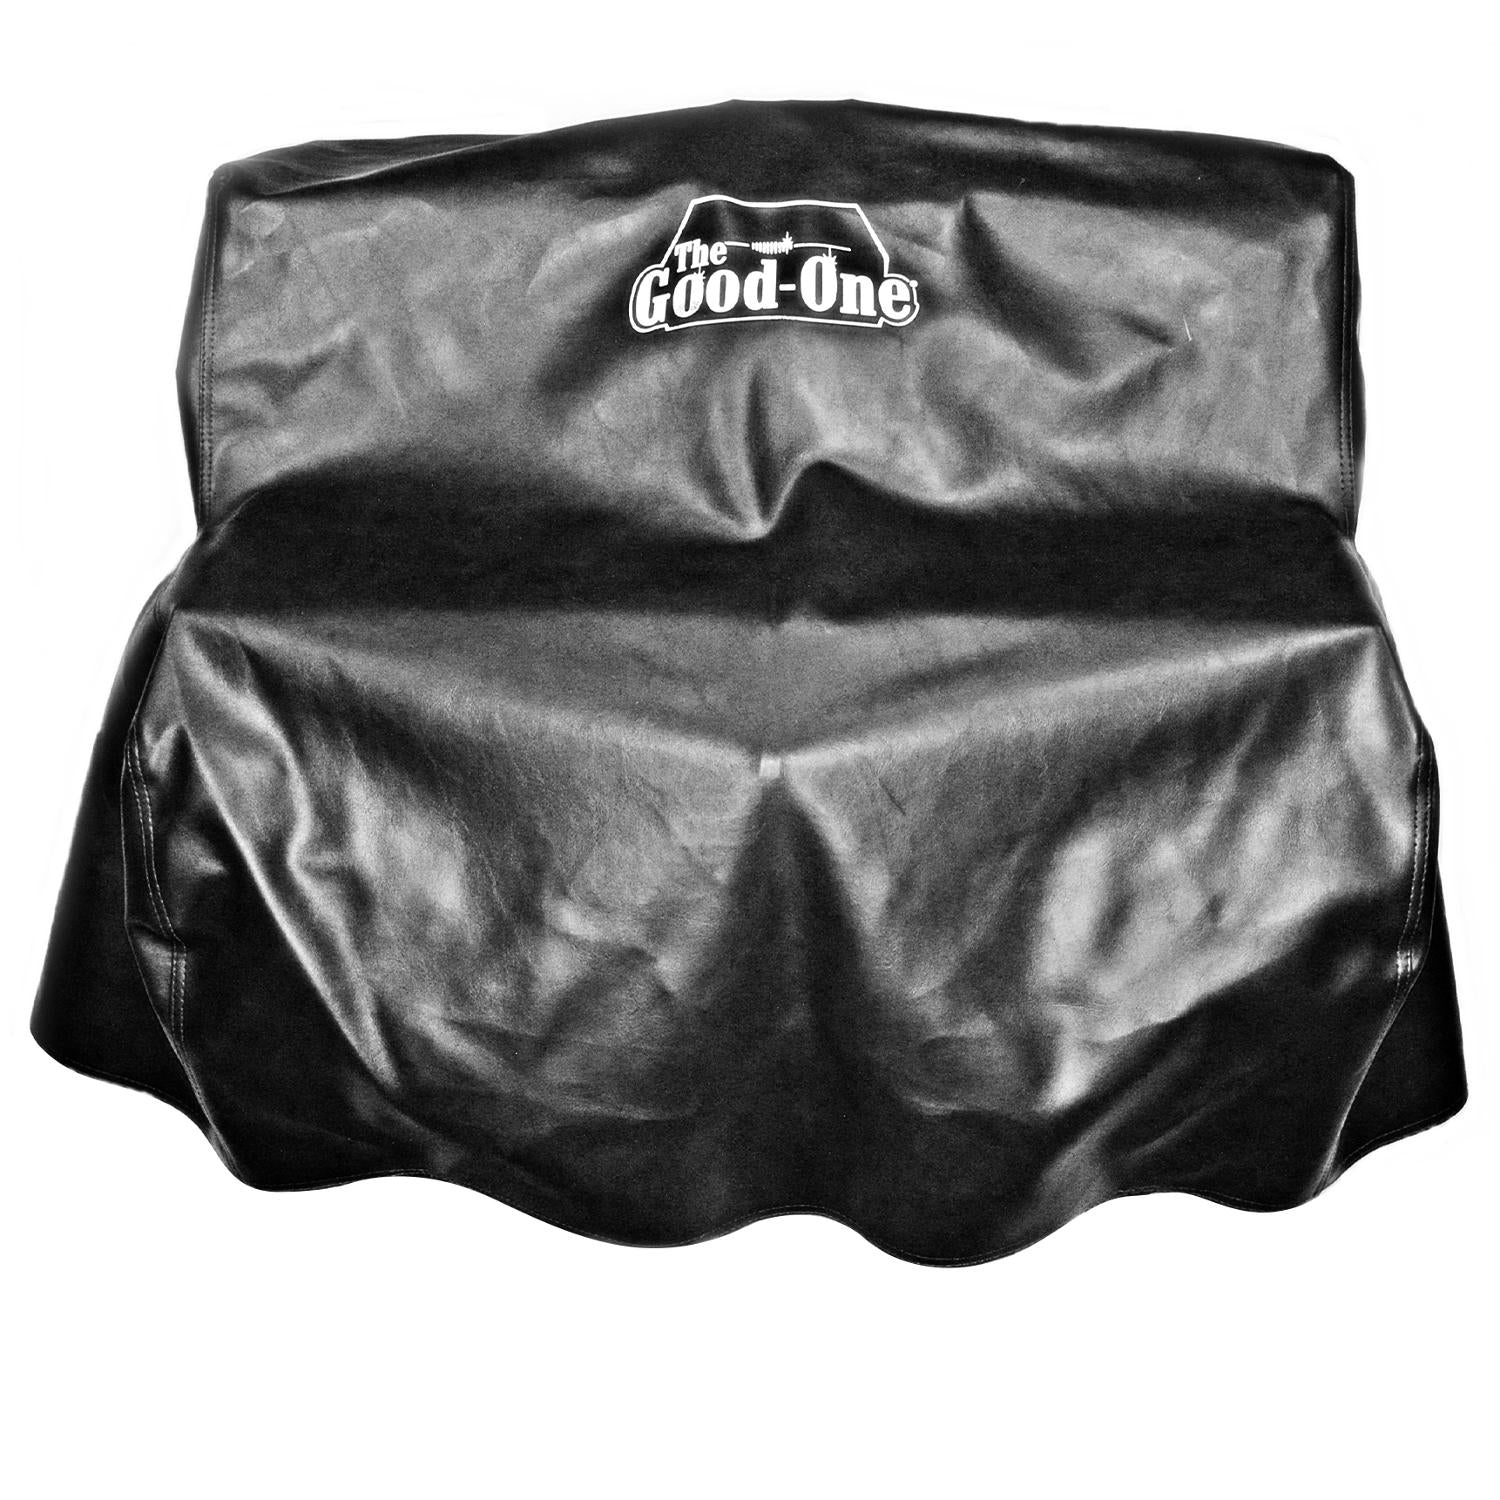 The Good-One Open Range Gen III 36-Inch Built-In Charcoal Smokers Cover